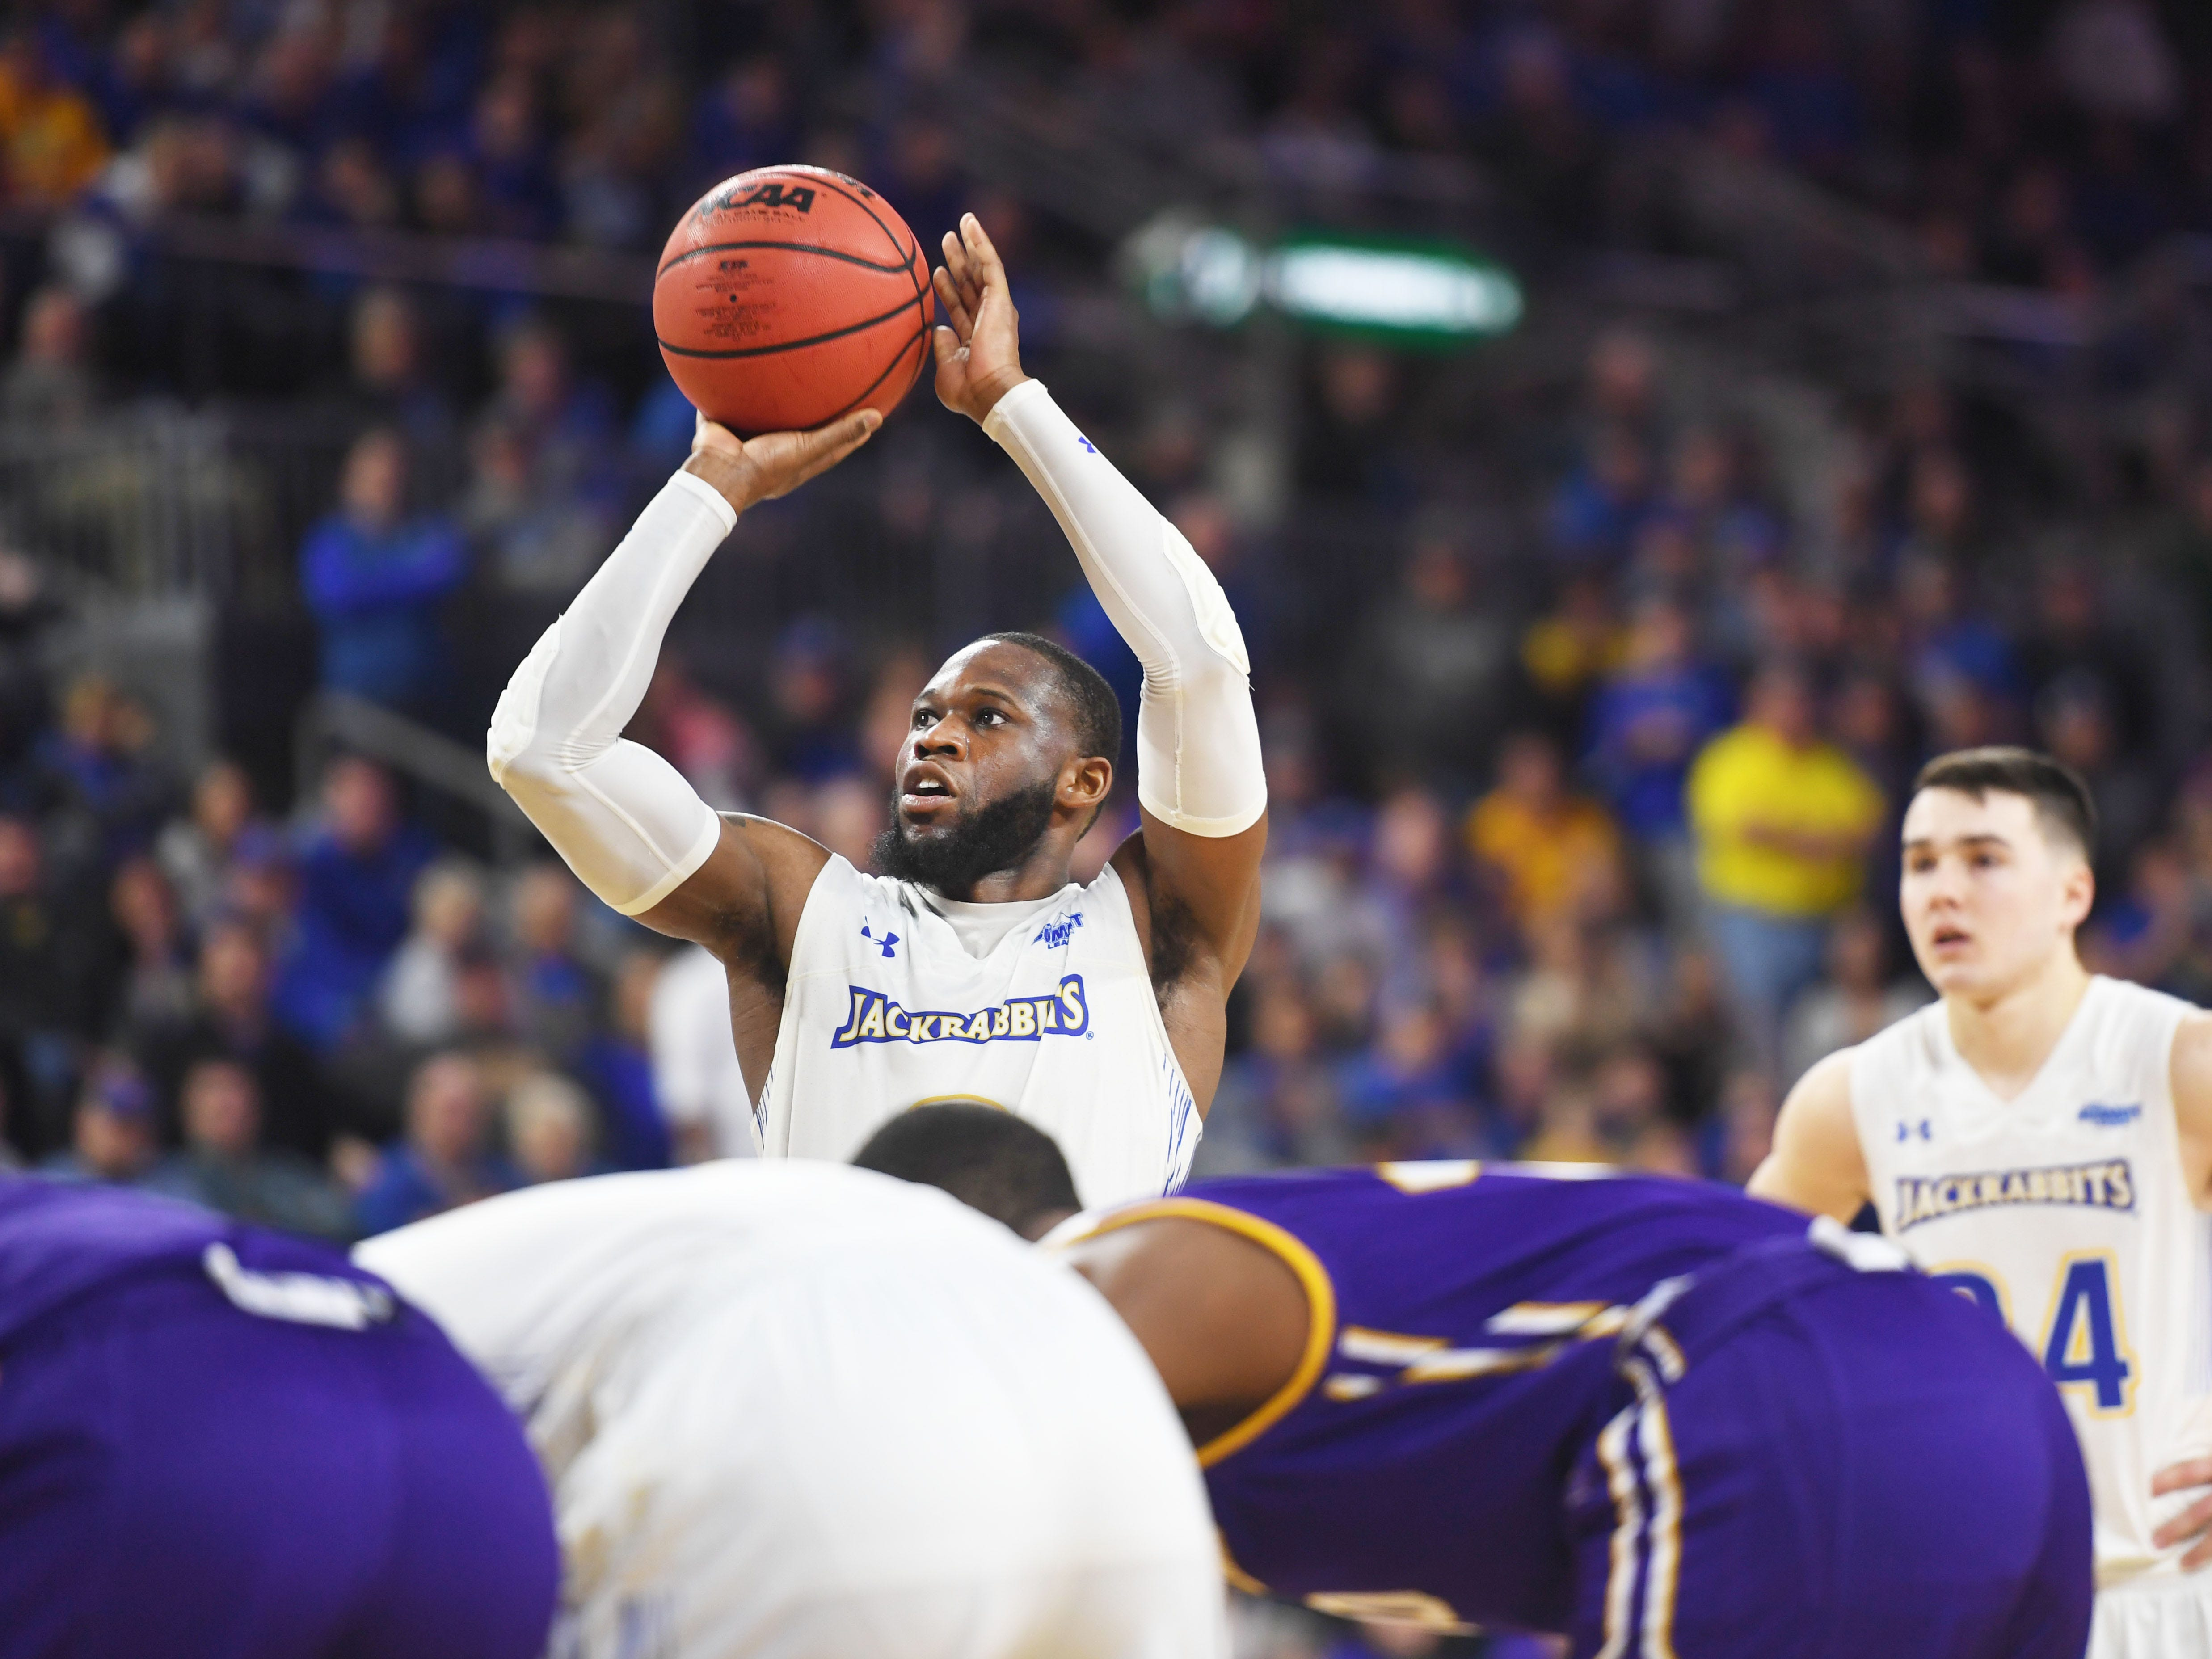 SDSU's Tevin King shoots a free throw during the game against Western Illinois Saturday, March 9, in the Summit League tournament at the Denny Sanford Premier Center in Sioux Falls.